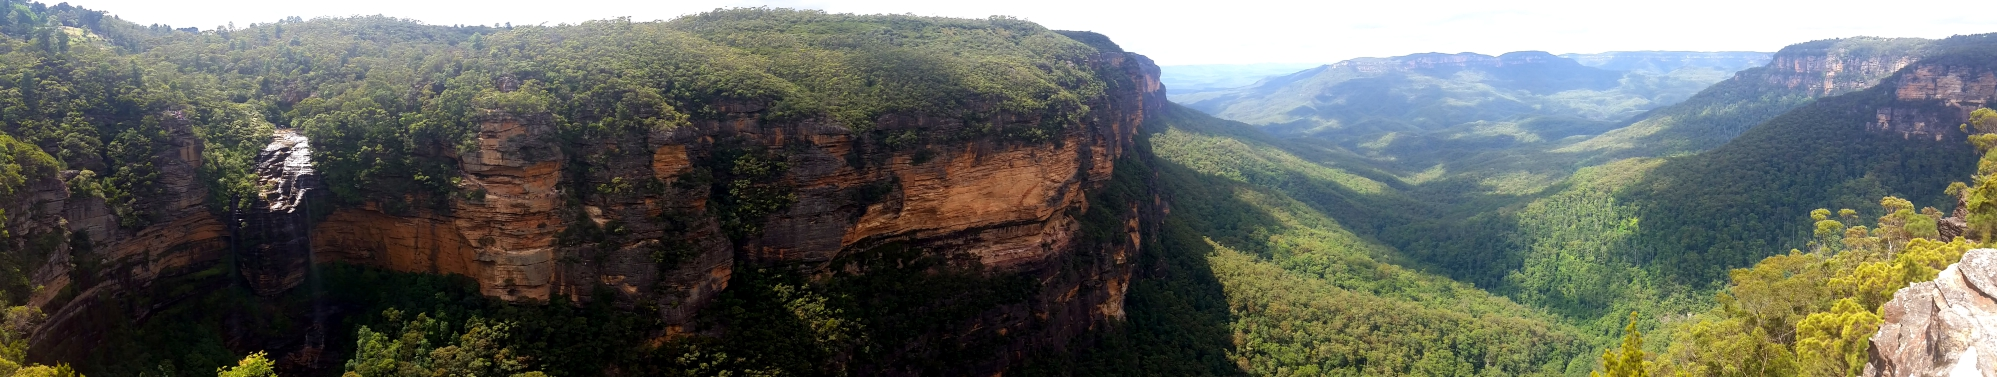 You wont fall asleep trekking here -Blue mountains near Sydney